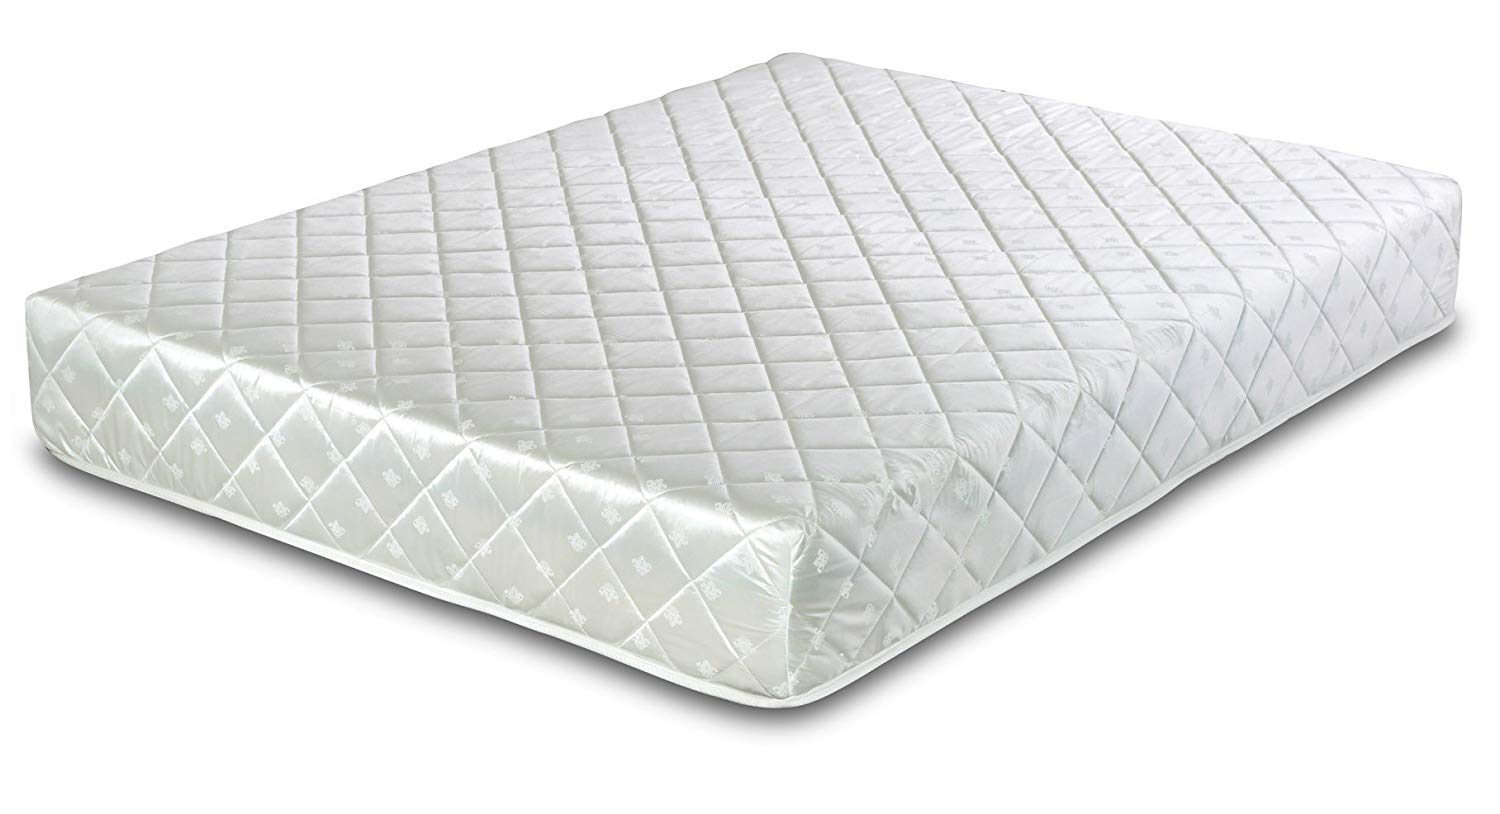 Visco Therapy Deluxe Memory Foam Coil Spring Rolled Mattress – Single